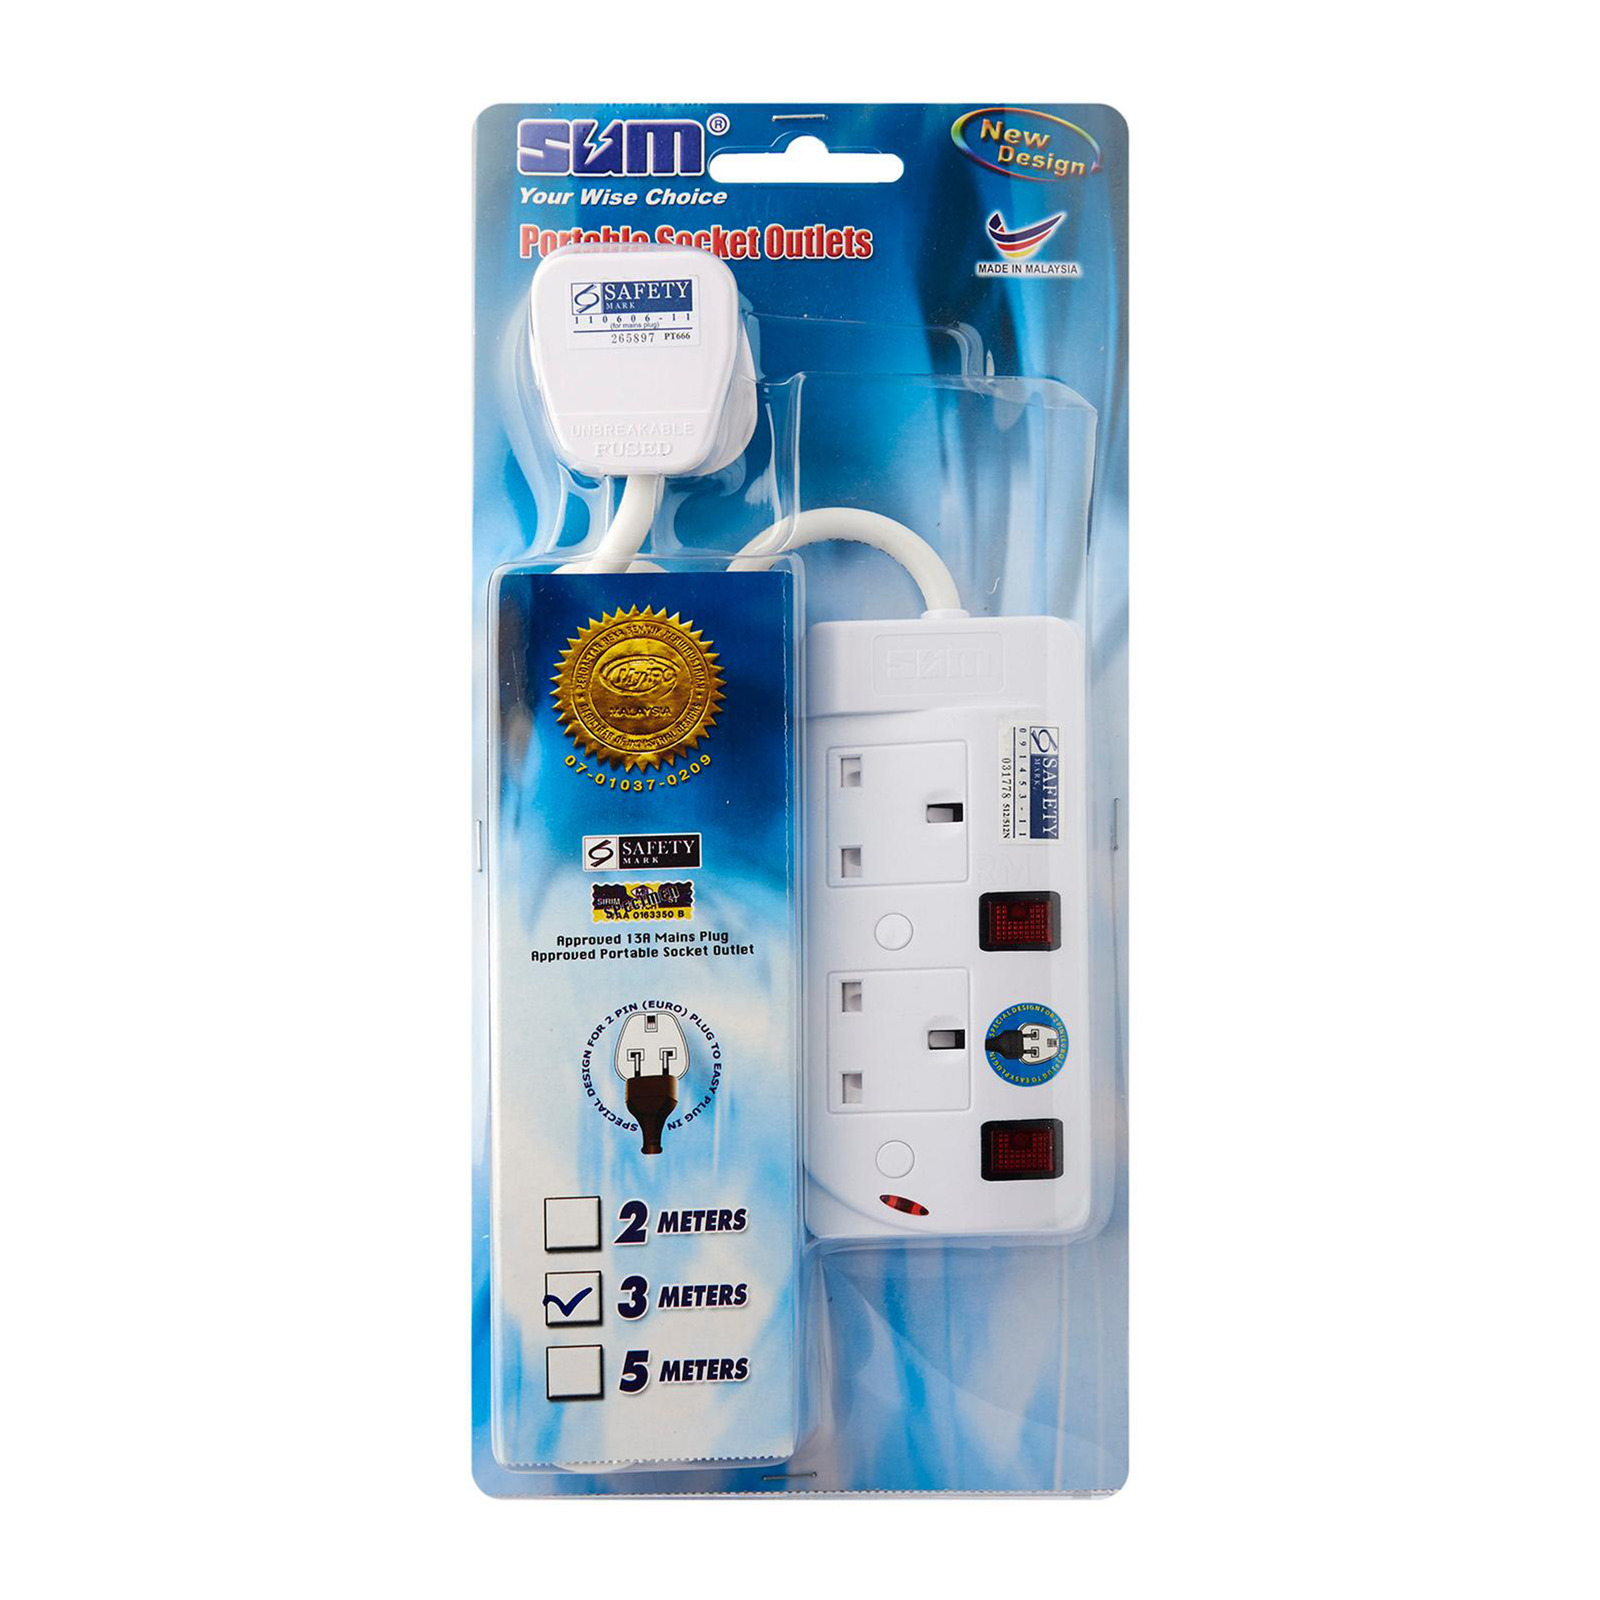 SUM 2 Outlets 3 Pin Portable Socket (3M)